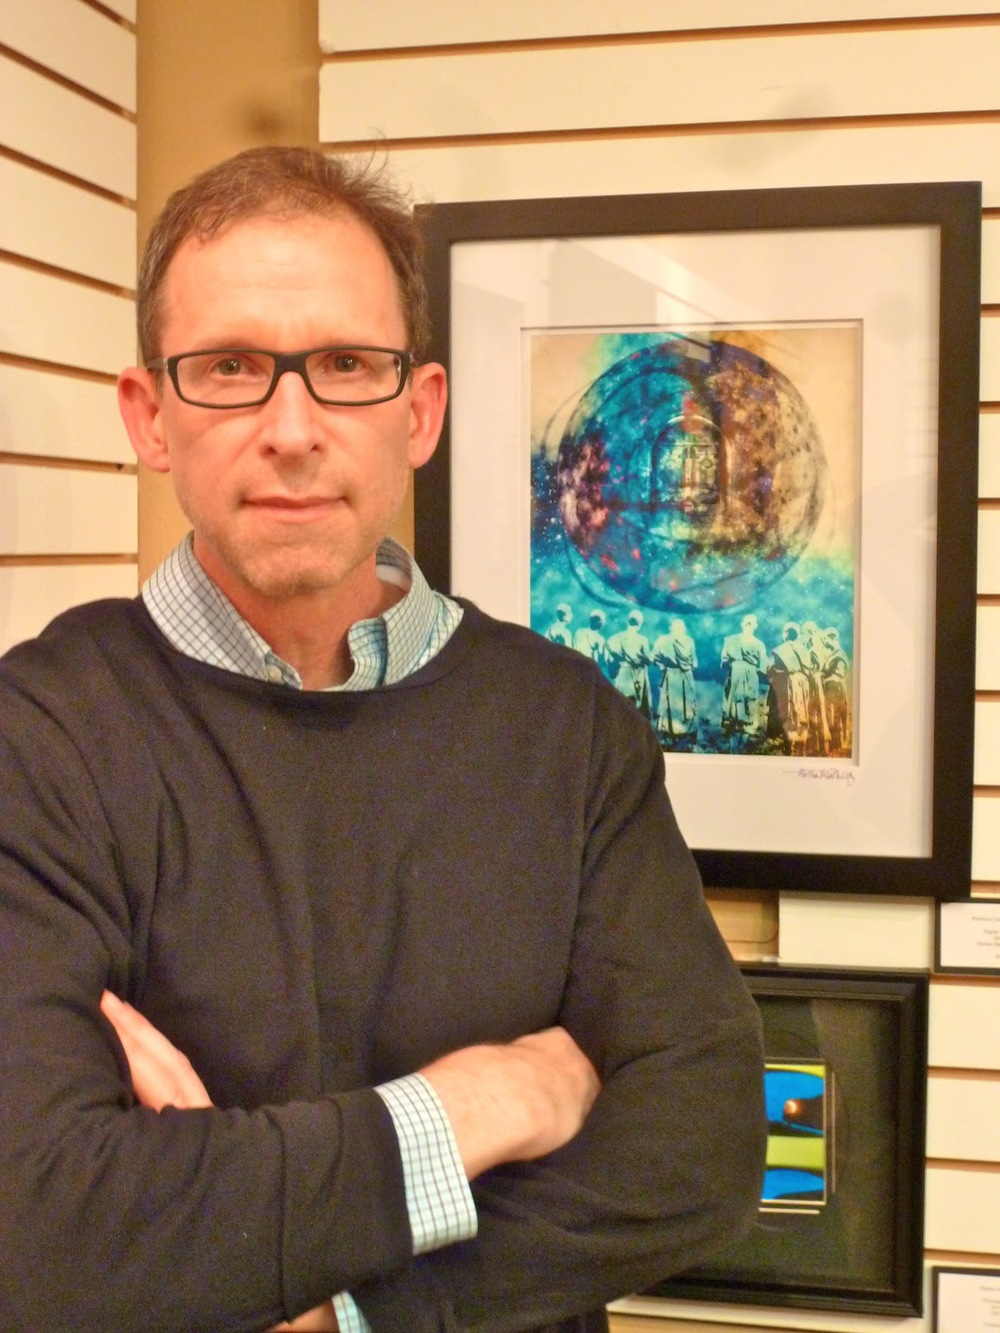 """Me with my latest work, """"Planetary Contemplations."""" Photograph by Elizabeth Gordon"""